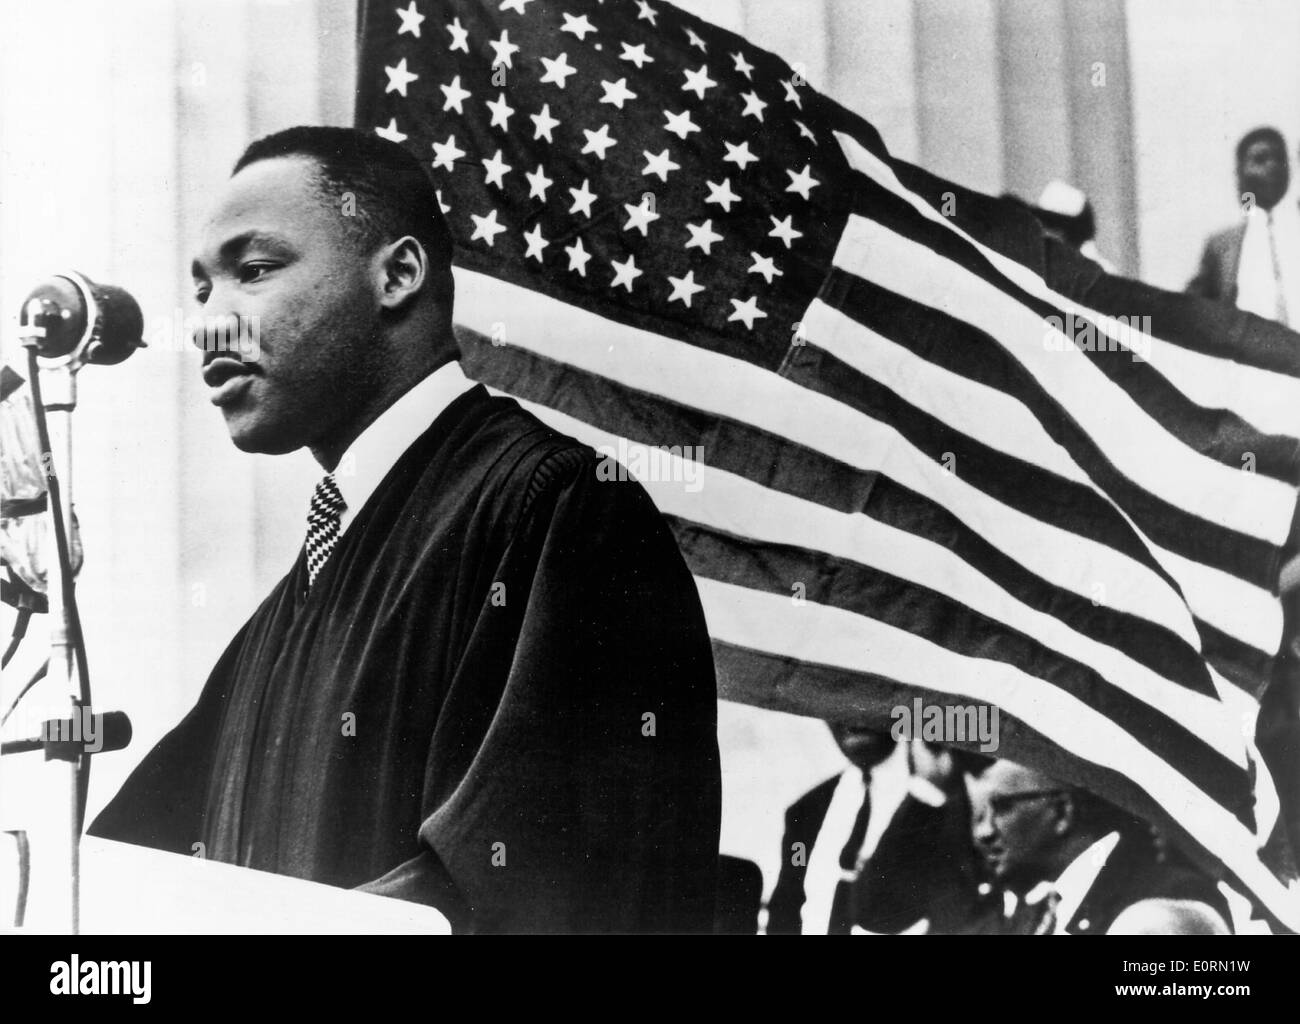 Minister Martin Luther King, Jr. preaching at an event Stock Photo